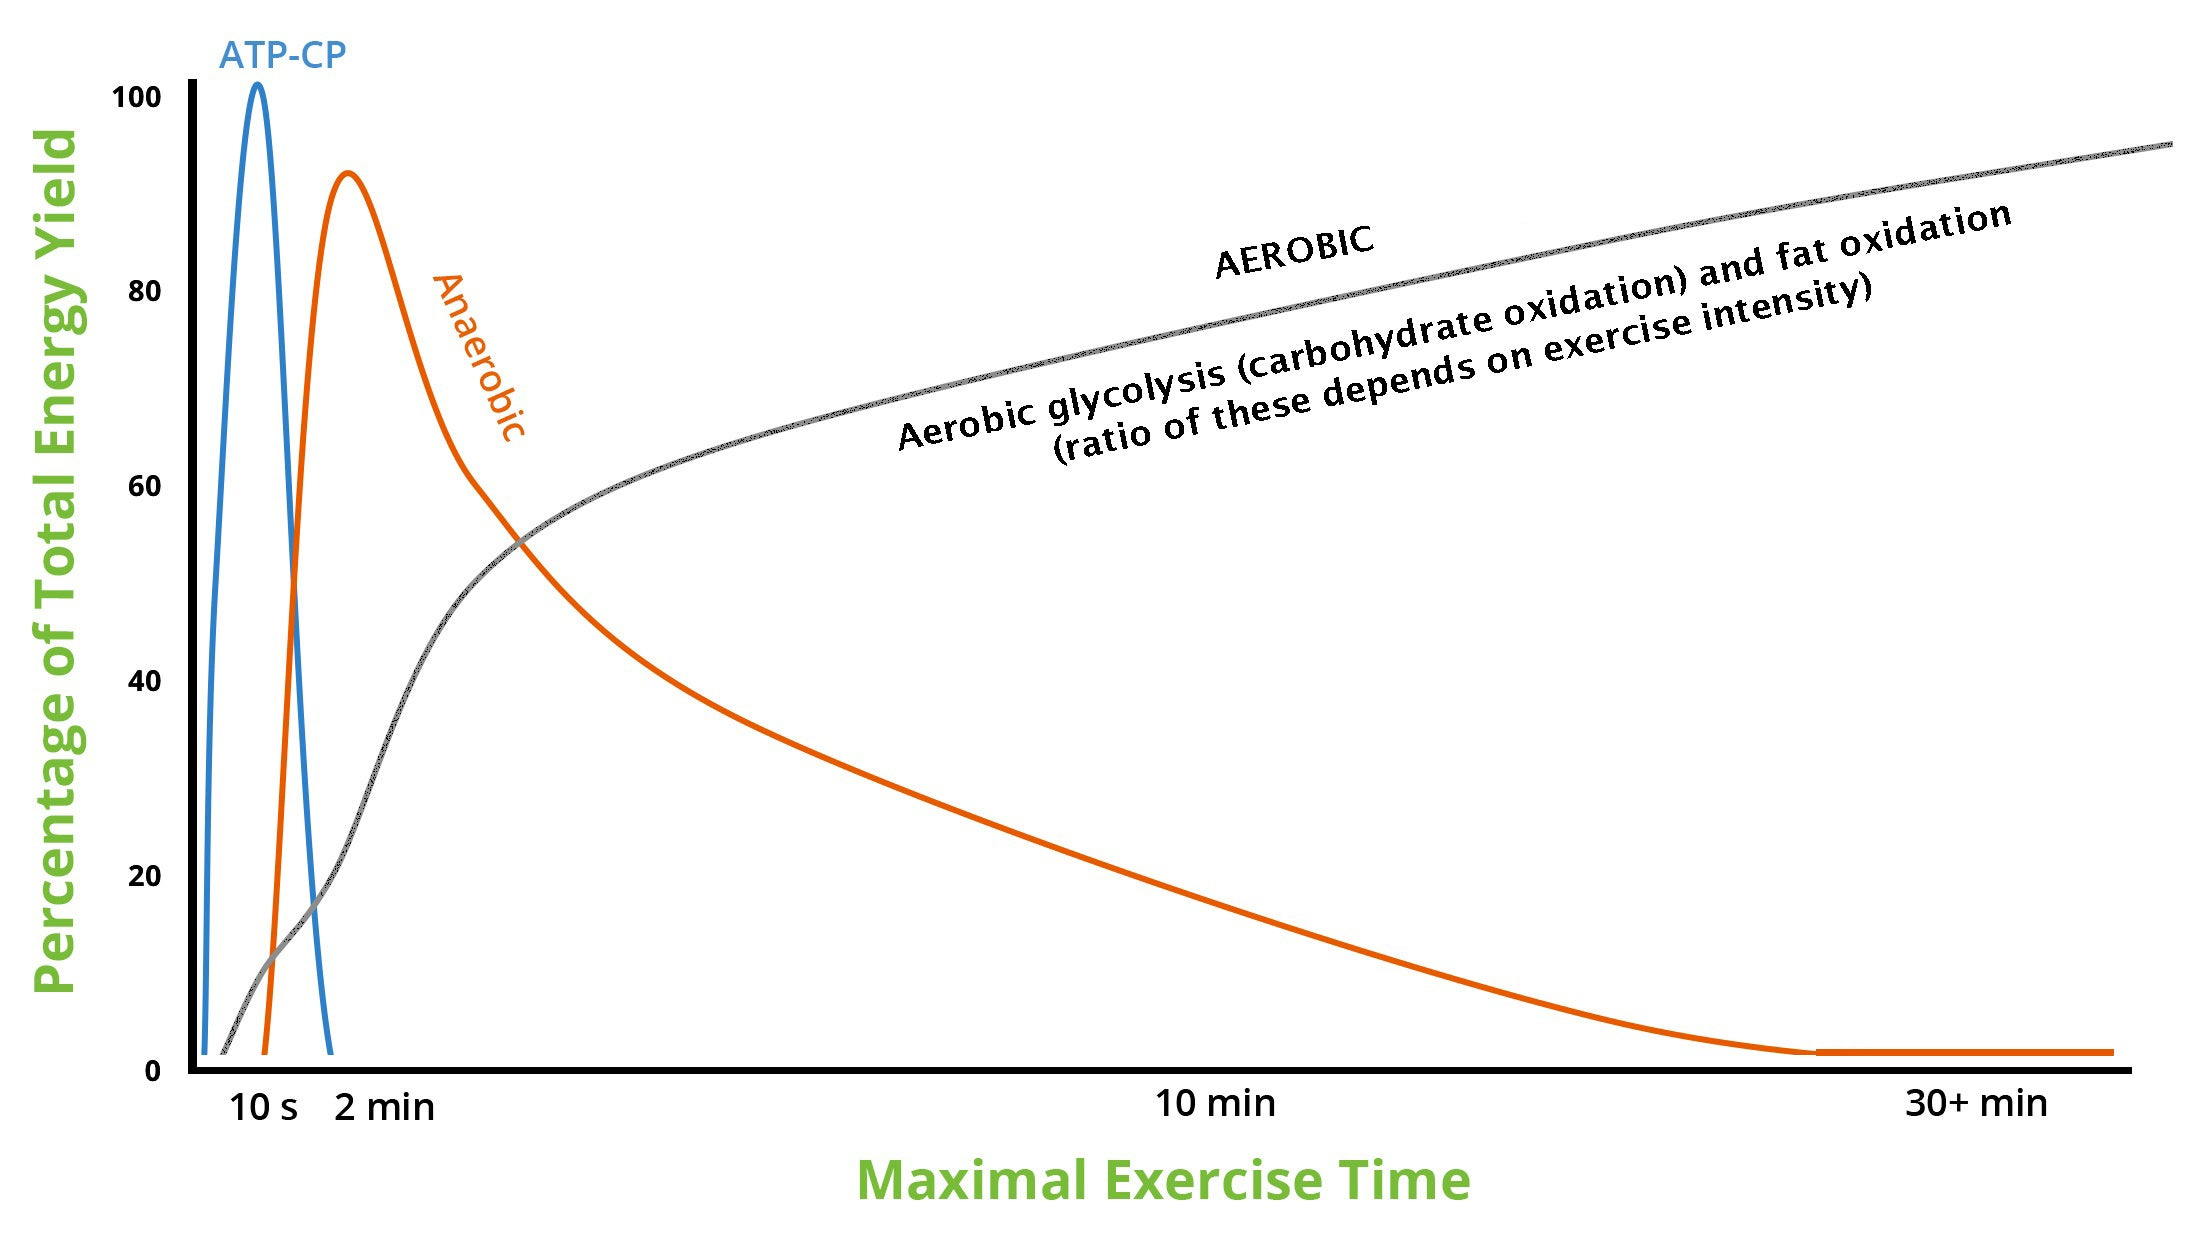 Event duration and energy source during maximal-effort exercise